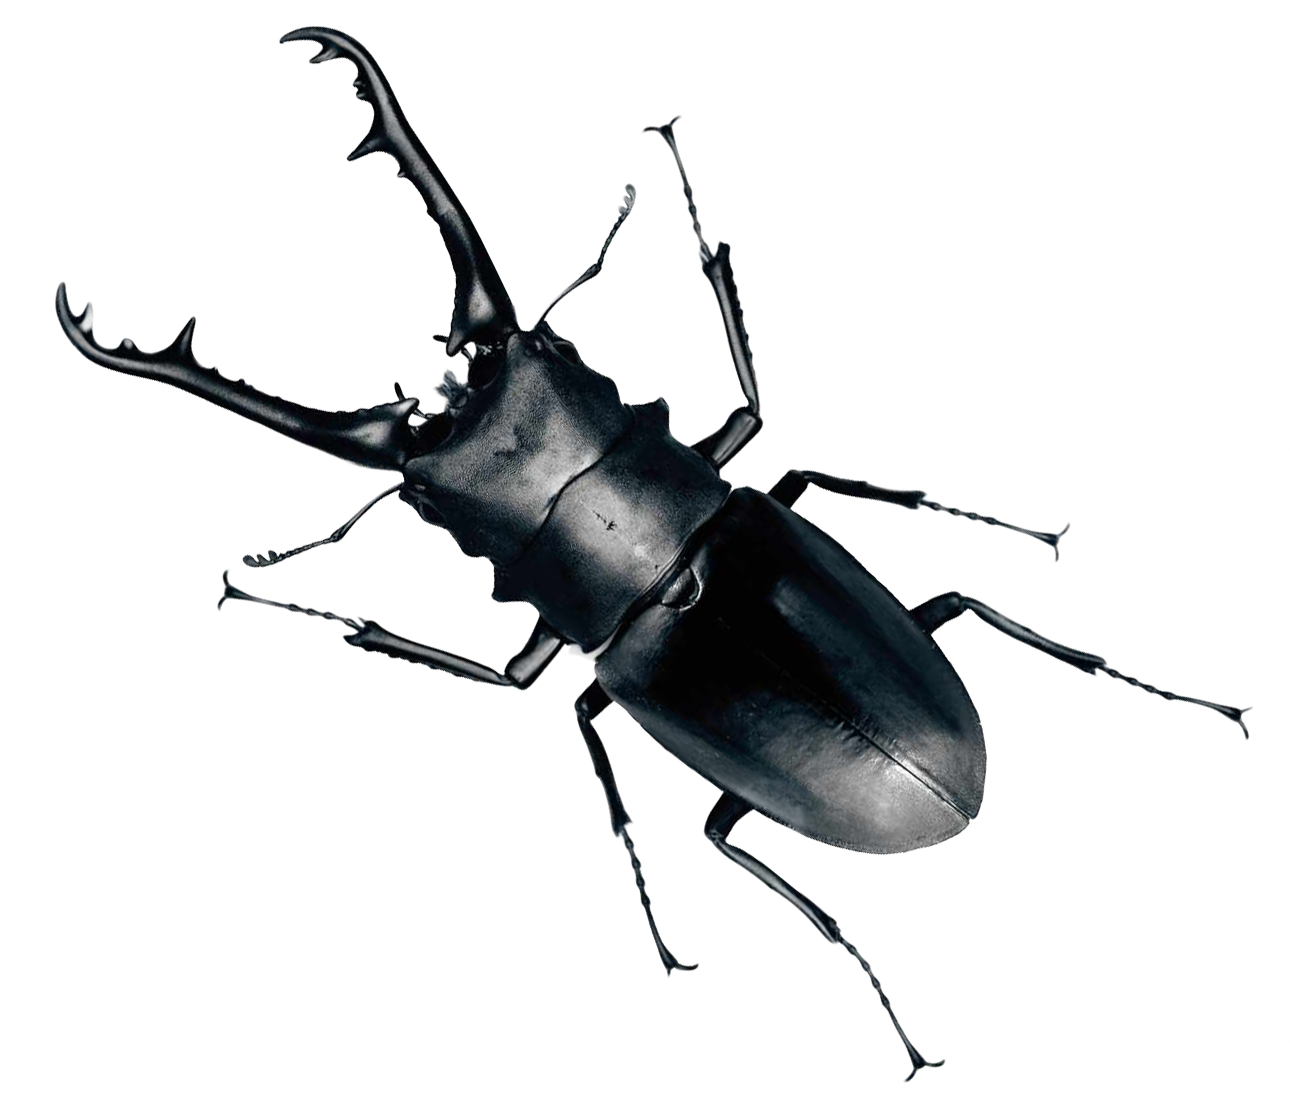 Png image purepng free. Beetle transparent bug picture free download